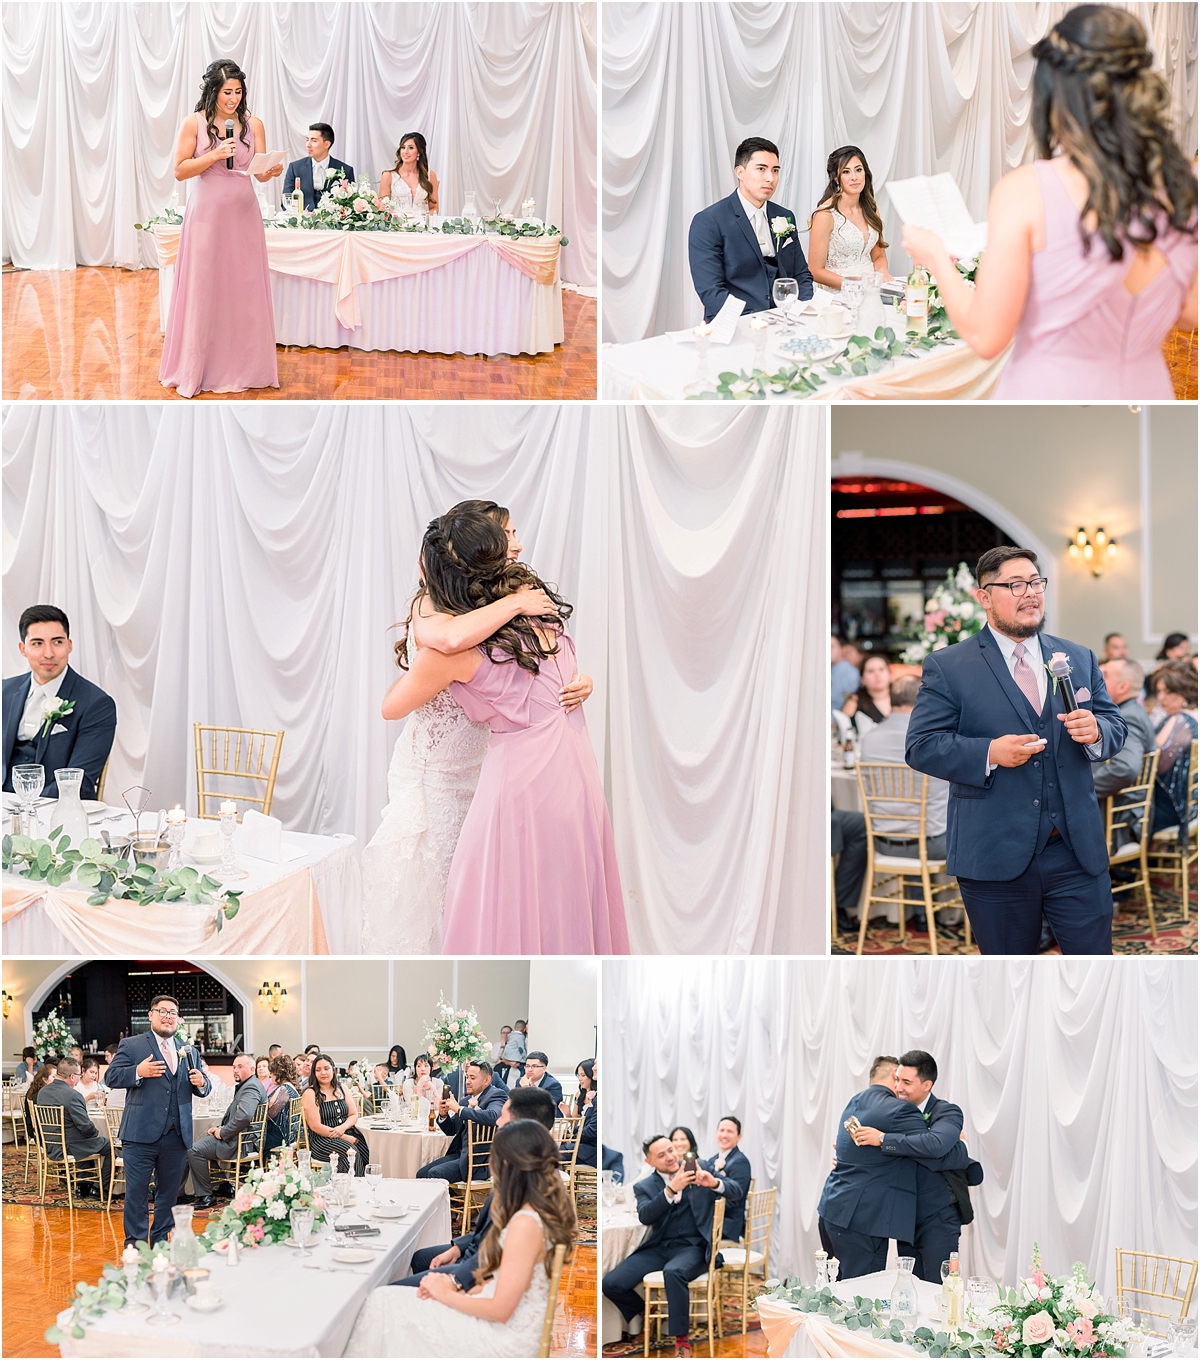 Tuscany Falls Wedding + Light and Airy Wedding Photographer Chicago, Mokena Wedding Photographer + Chicago Latino Photography + Naperville Wedding Photographer + Chicago Engagement Photographer + Best Photographer In Chicago_0068.jpg